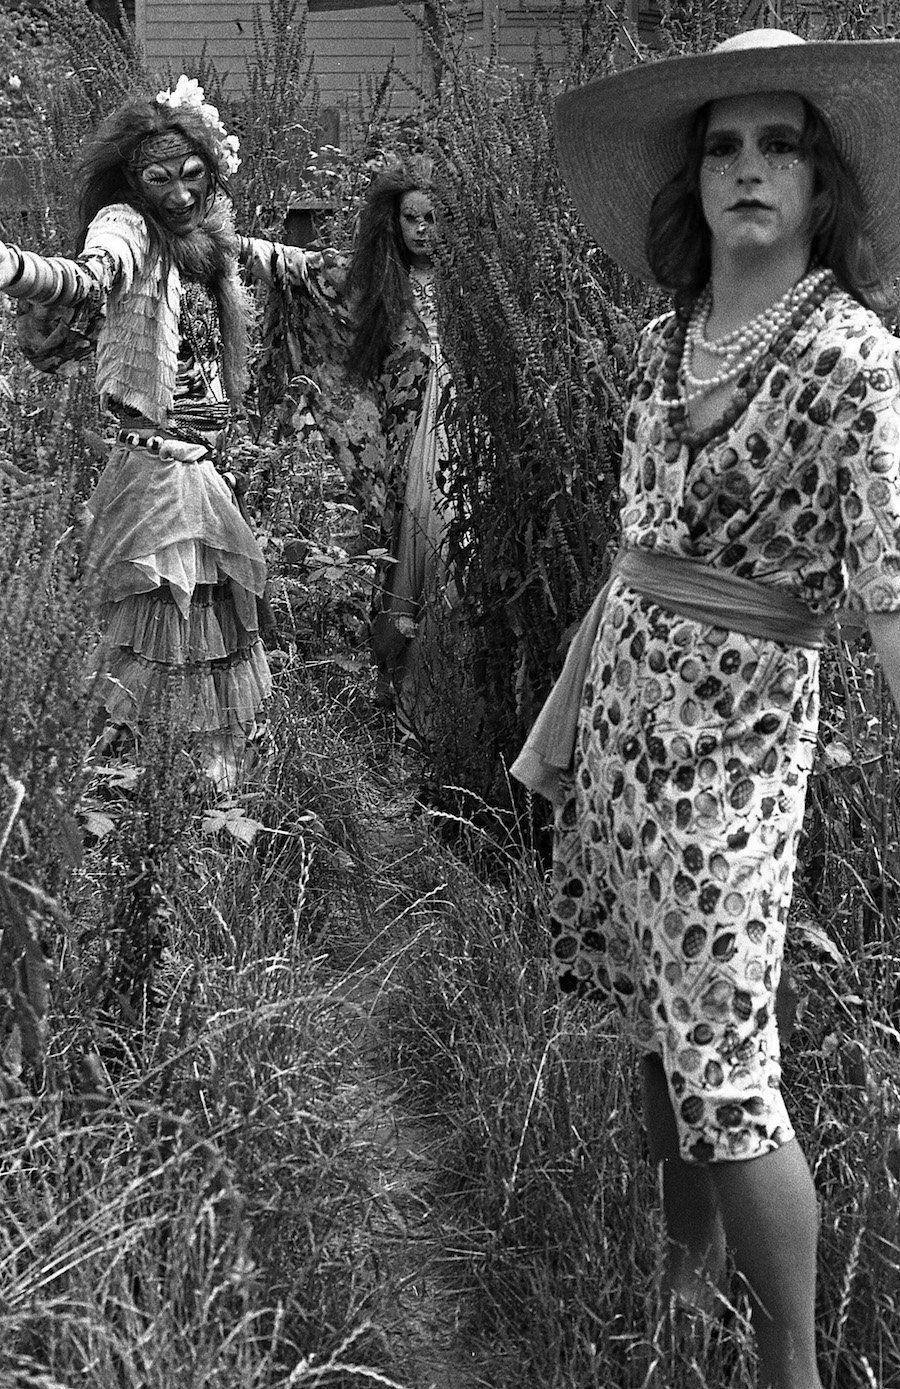 Cockettes Marshall & Prissy, 1971. Photo by Fayette Hauser. Courtesy of Fayette Hauser and Museum of Arts and Design.